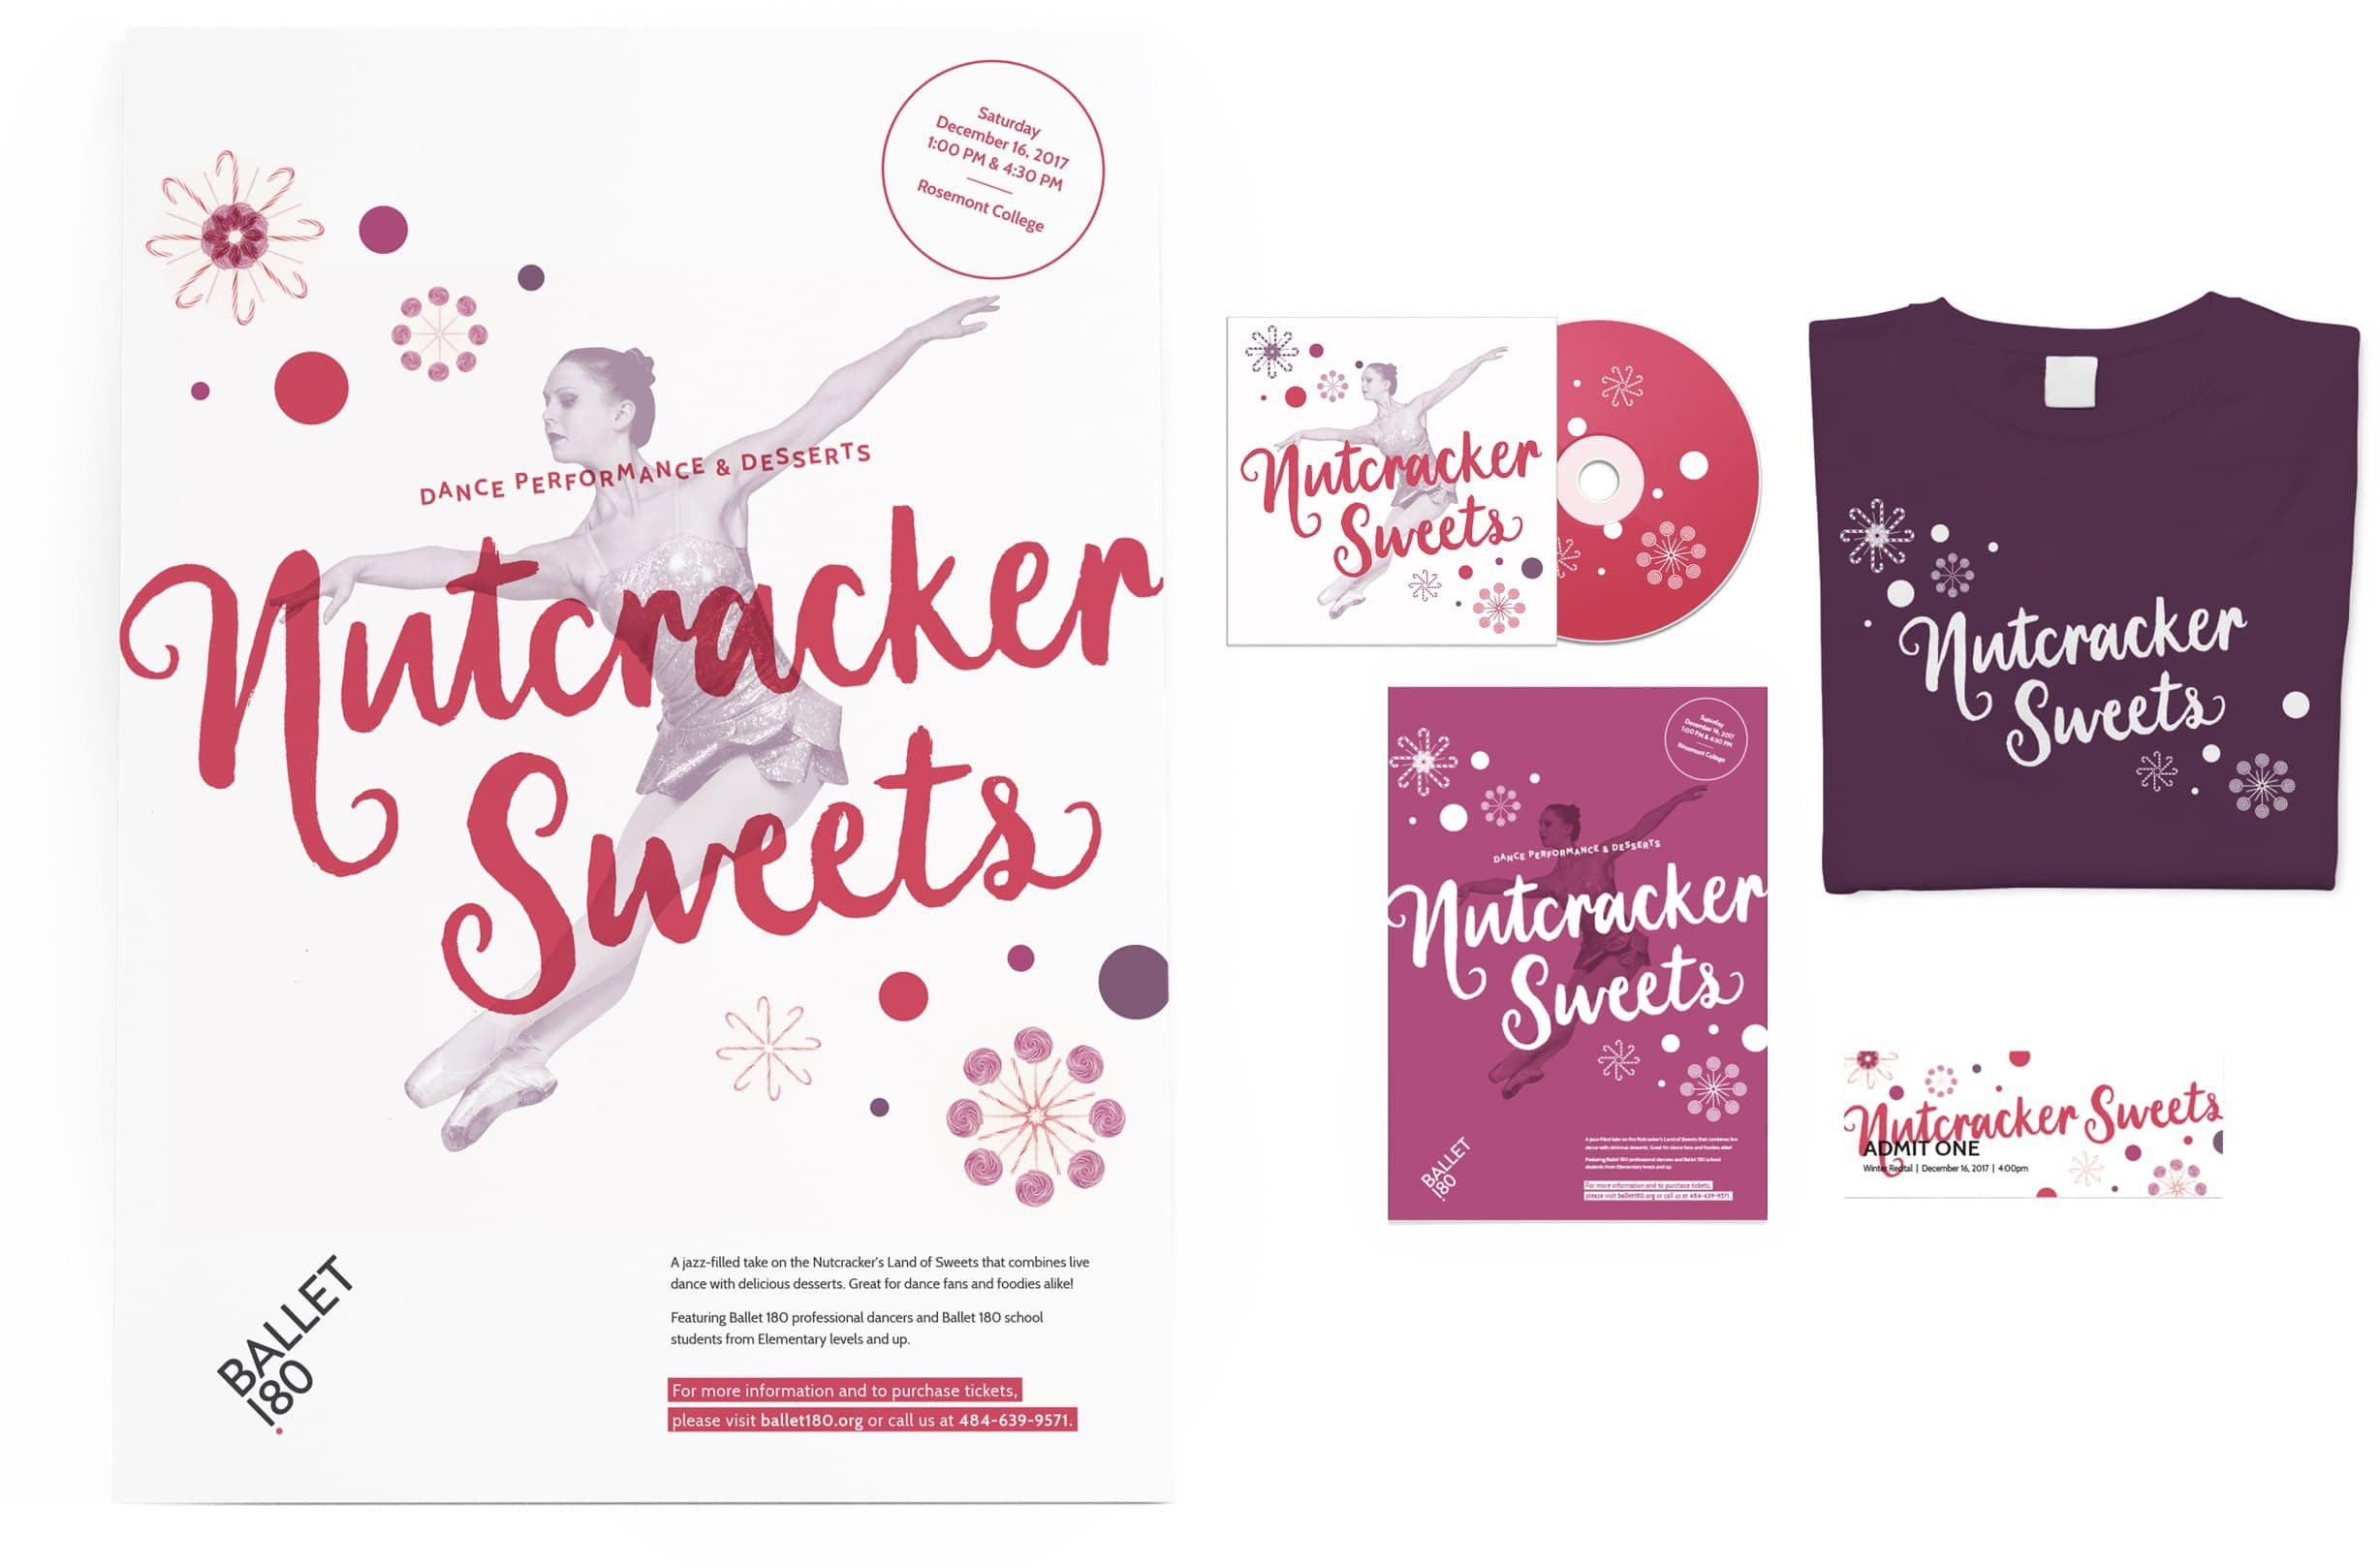 Ballet 180 Nutcracker Sweets Event Collateral